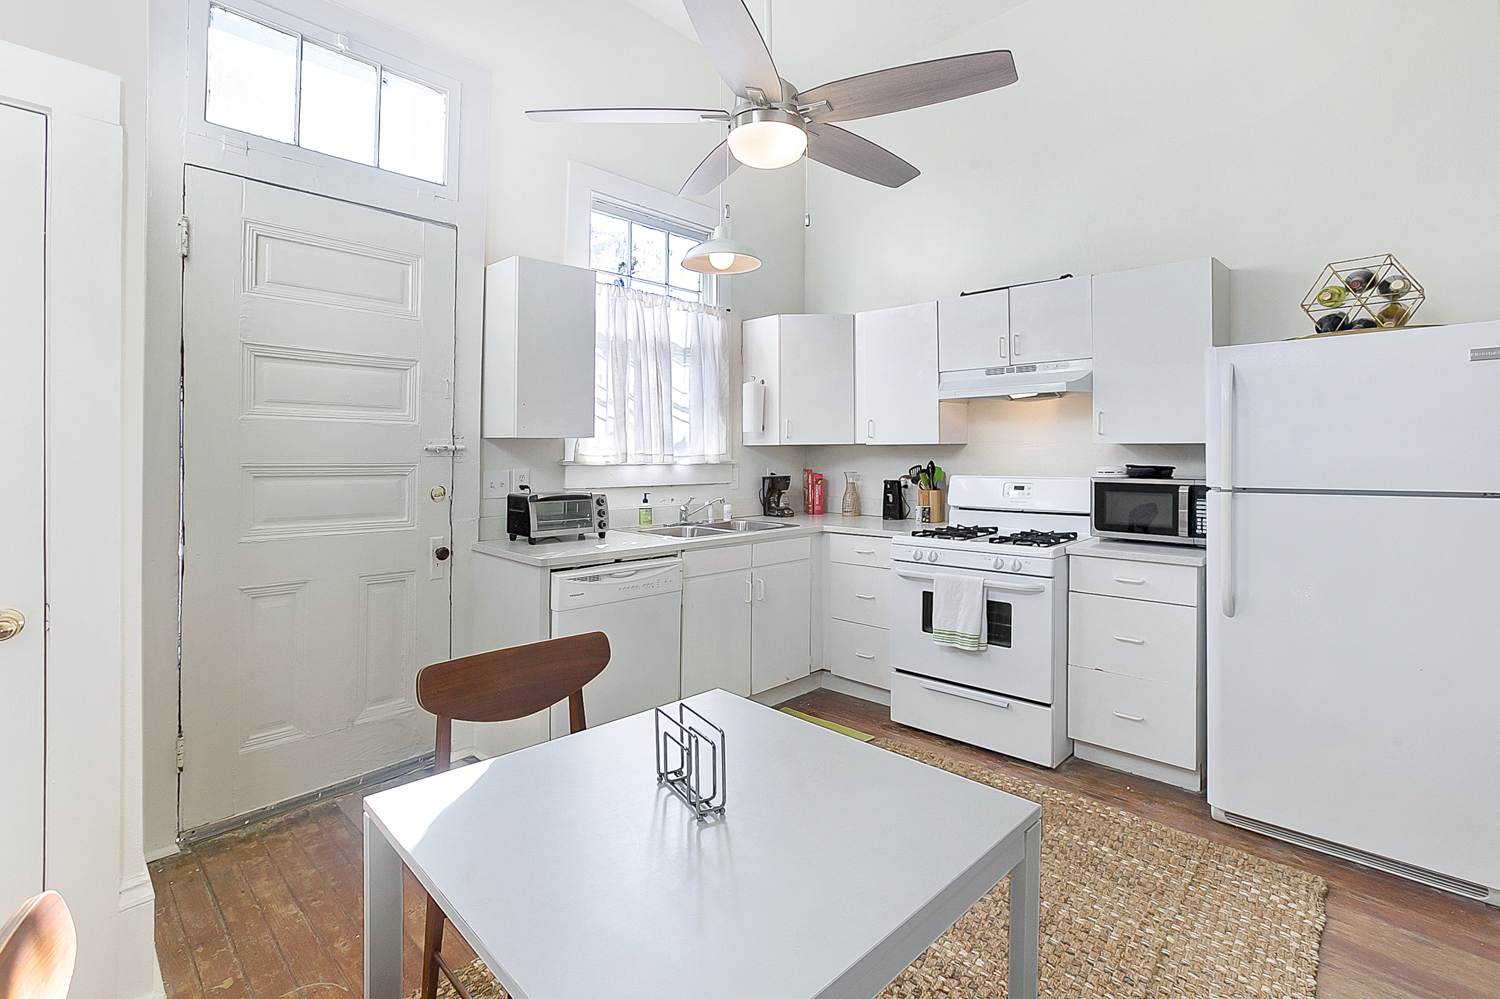 Uptown, Apartment, 1 beds, 1.0 baths, $2500 per month New Orleans Rental - devie image_3